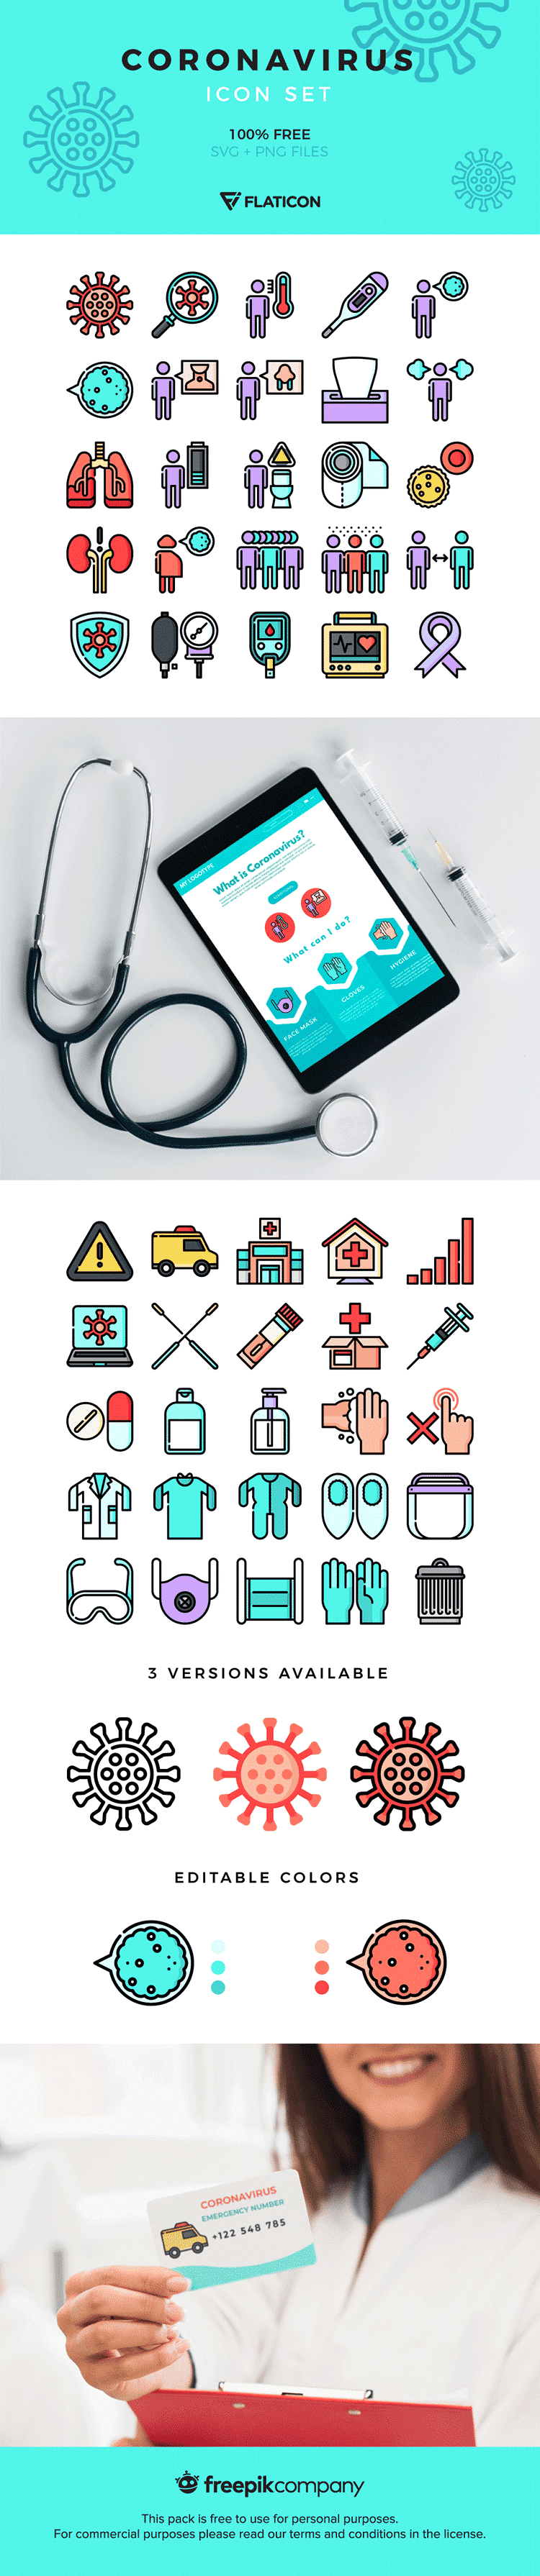 Free Covid-19 themed icons